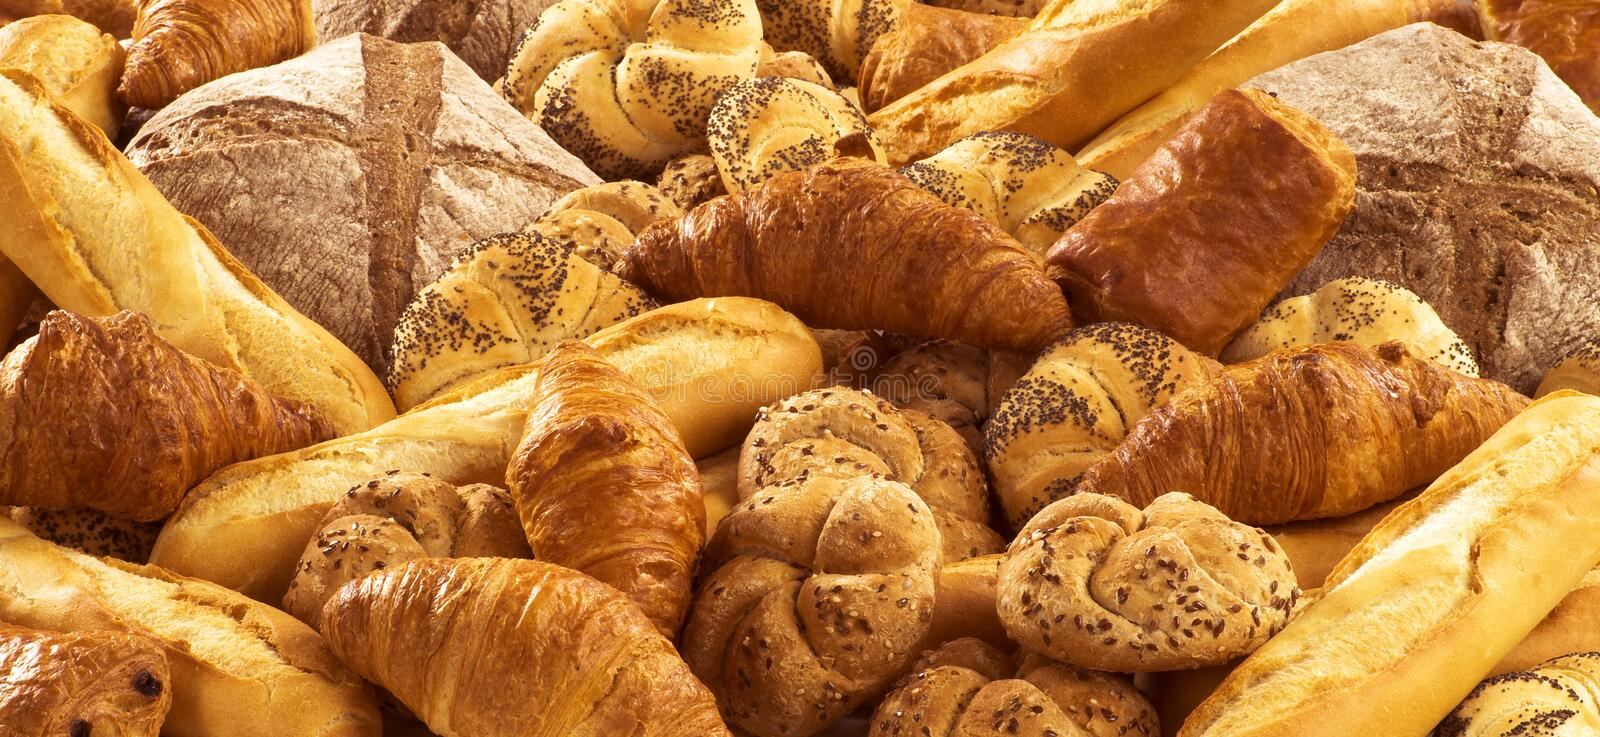 Fresh Bread And Pastry Stock Photo Image Of Rolls Fresh